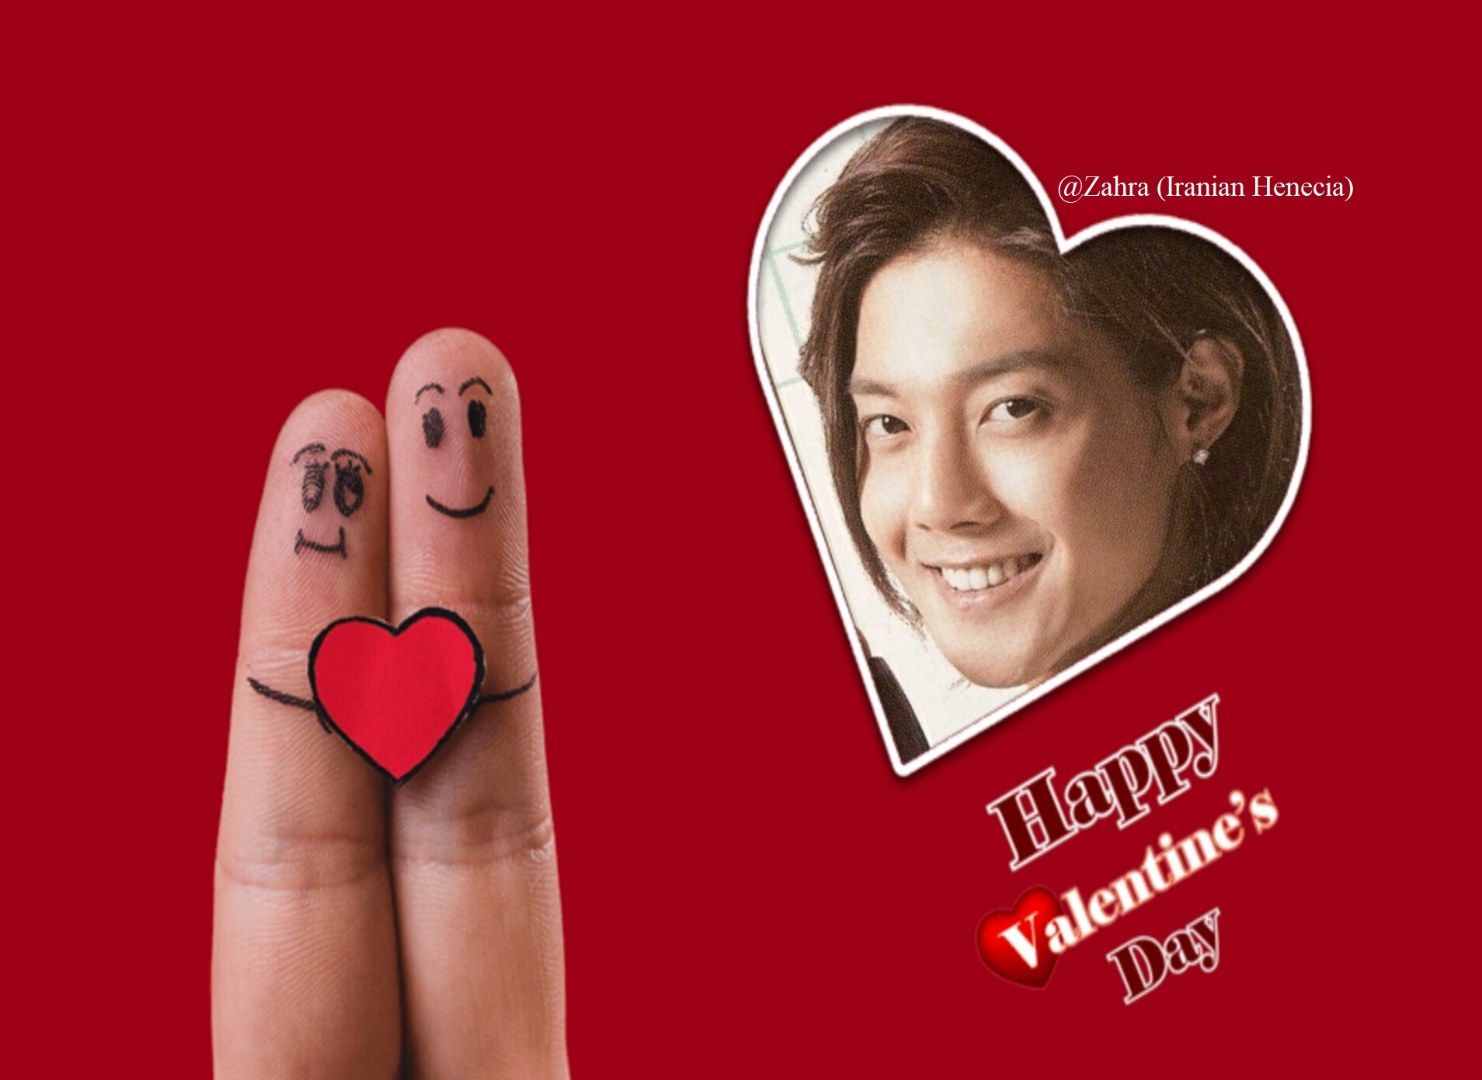 (My Fanart of Happy Valentine Day 2018 to Hyun Joong & Henecia (2